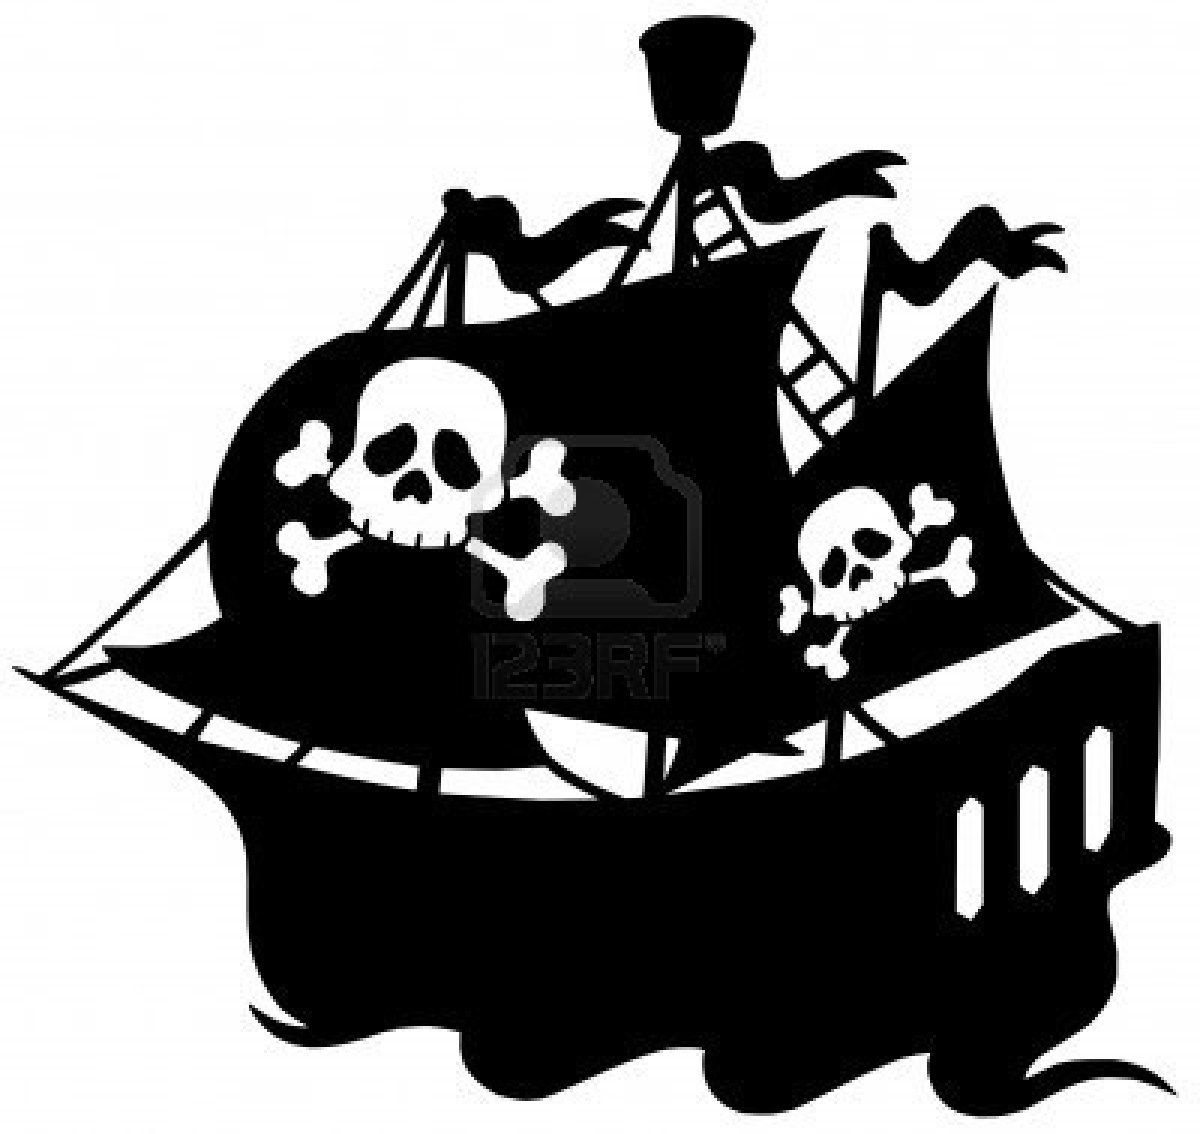 Pirate ship silhouette vector illustration royalty free cliparts